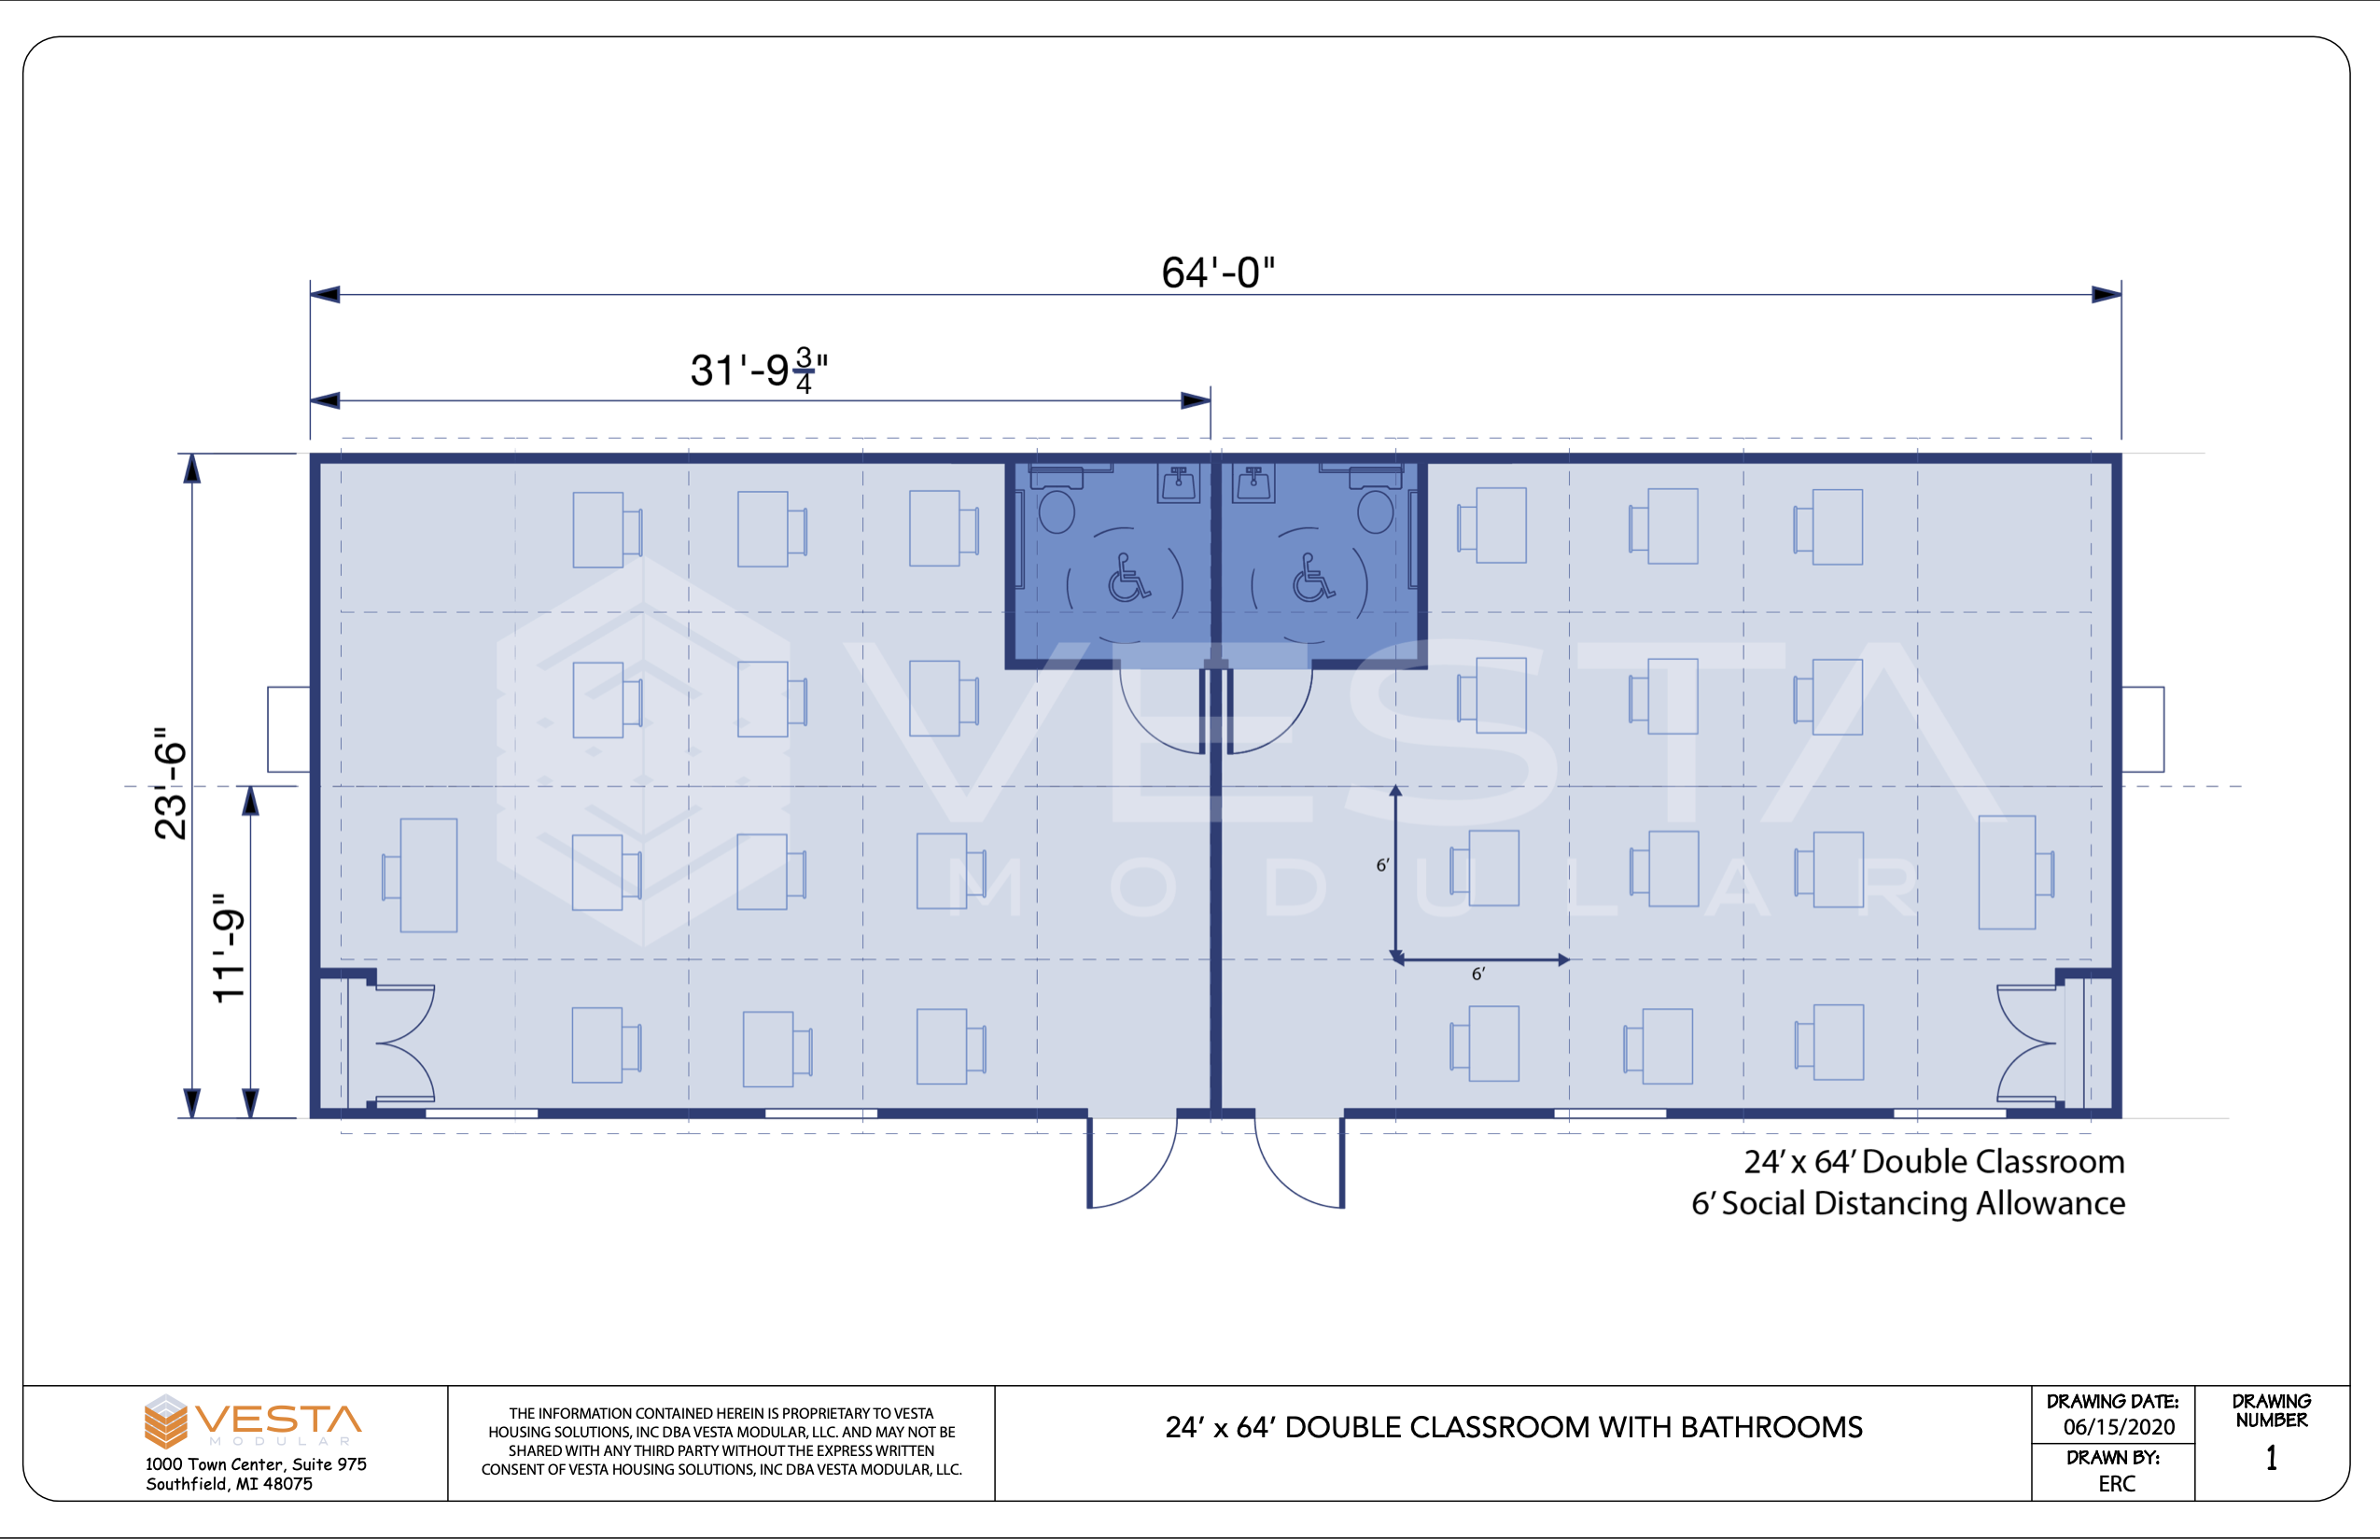 Pandemic and CDC Guideline Layout for Modular Classrooms